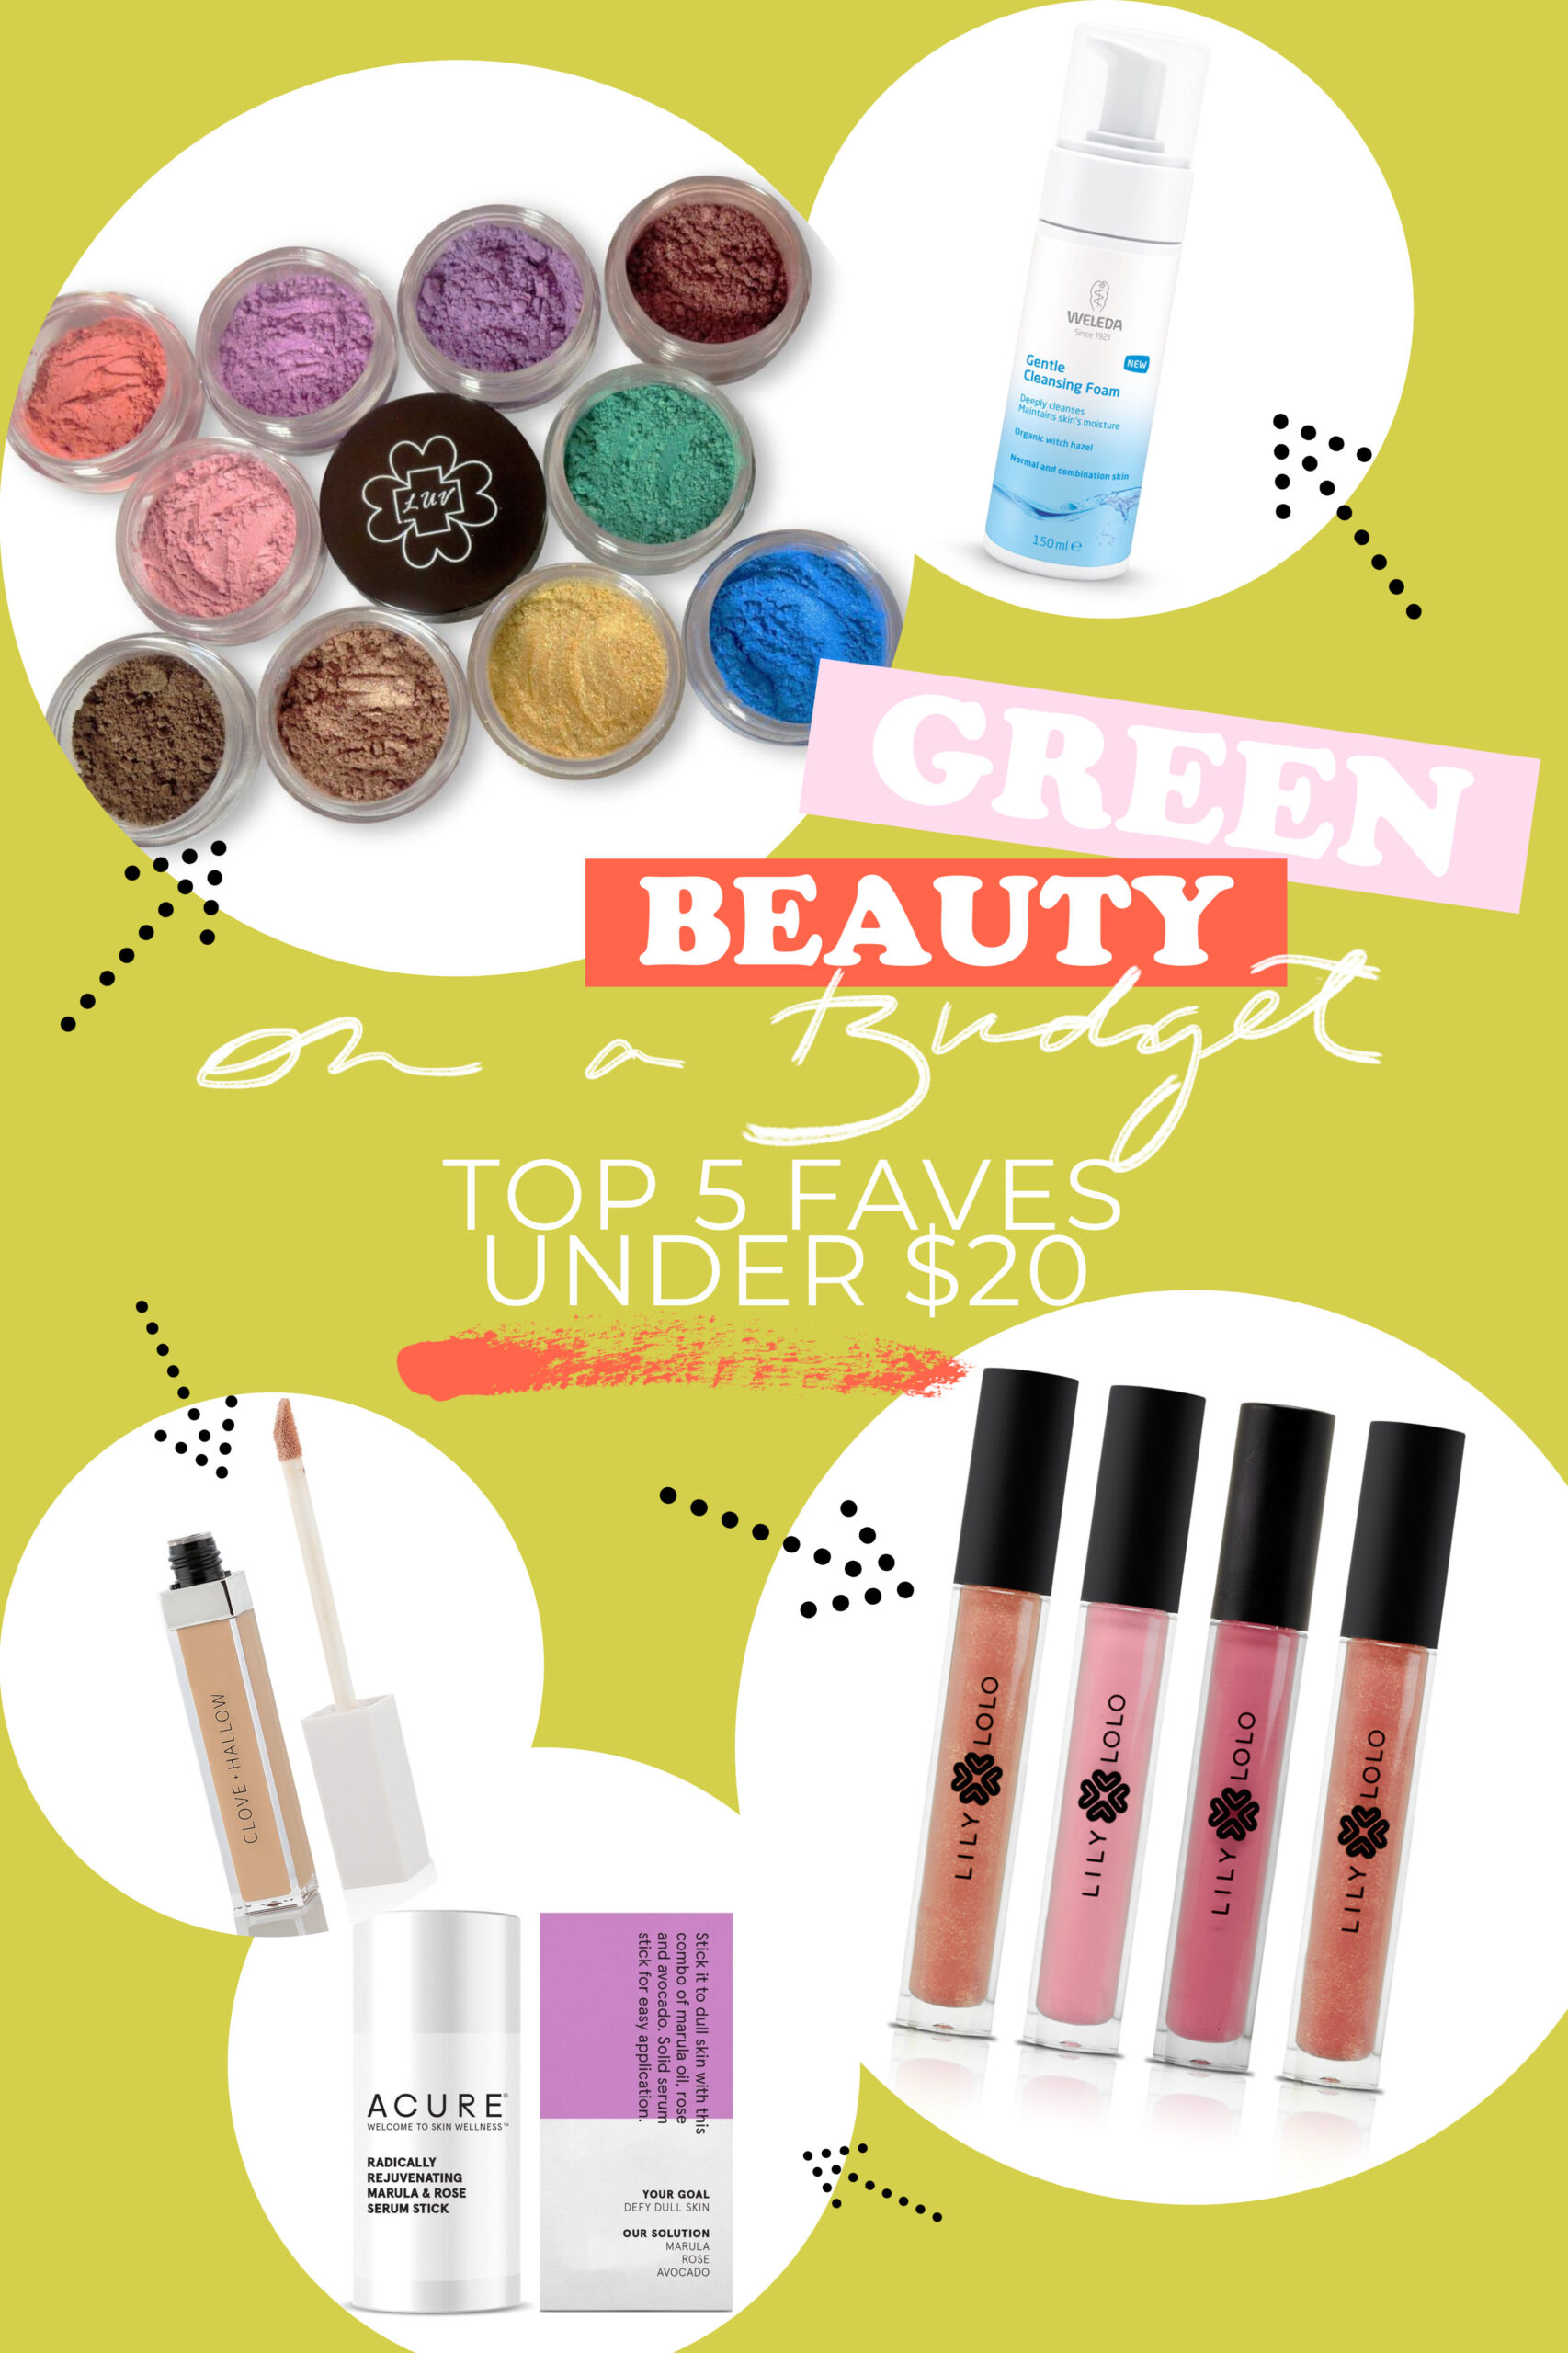 Green Beauty on a Budget: Top 5 Faves Under $20